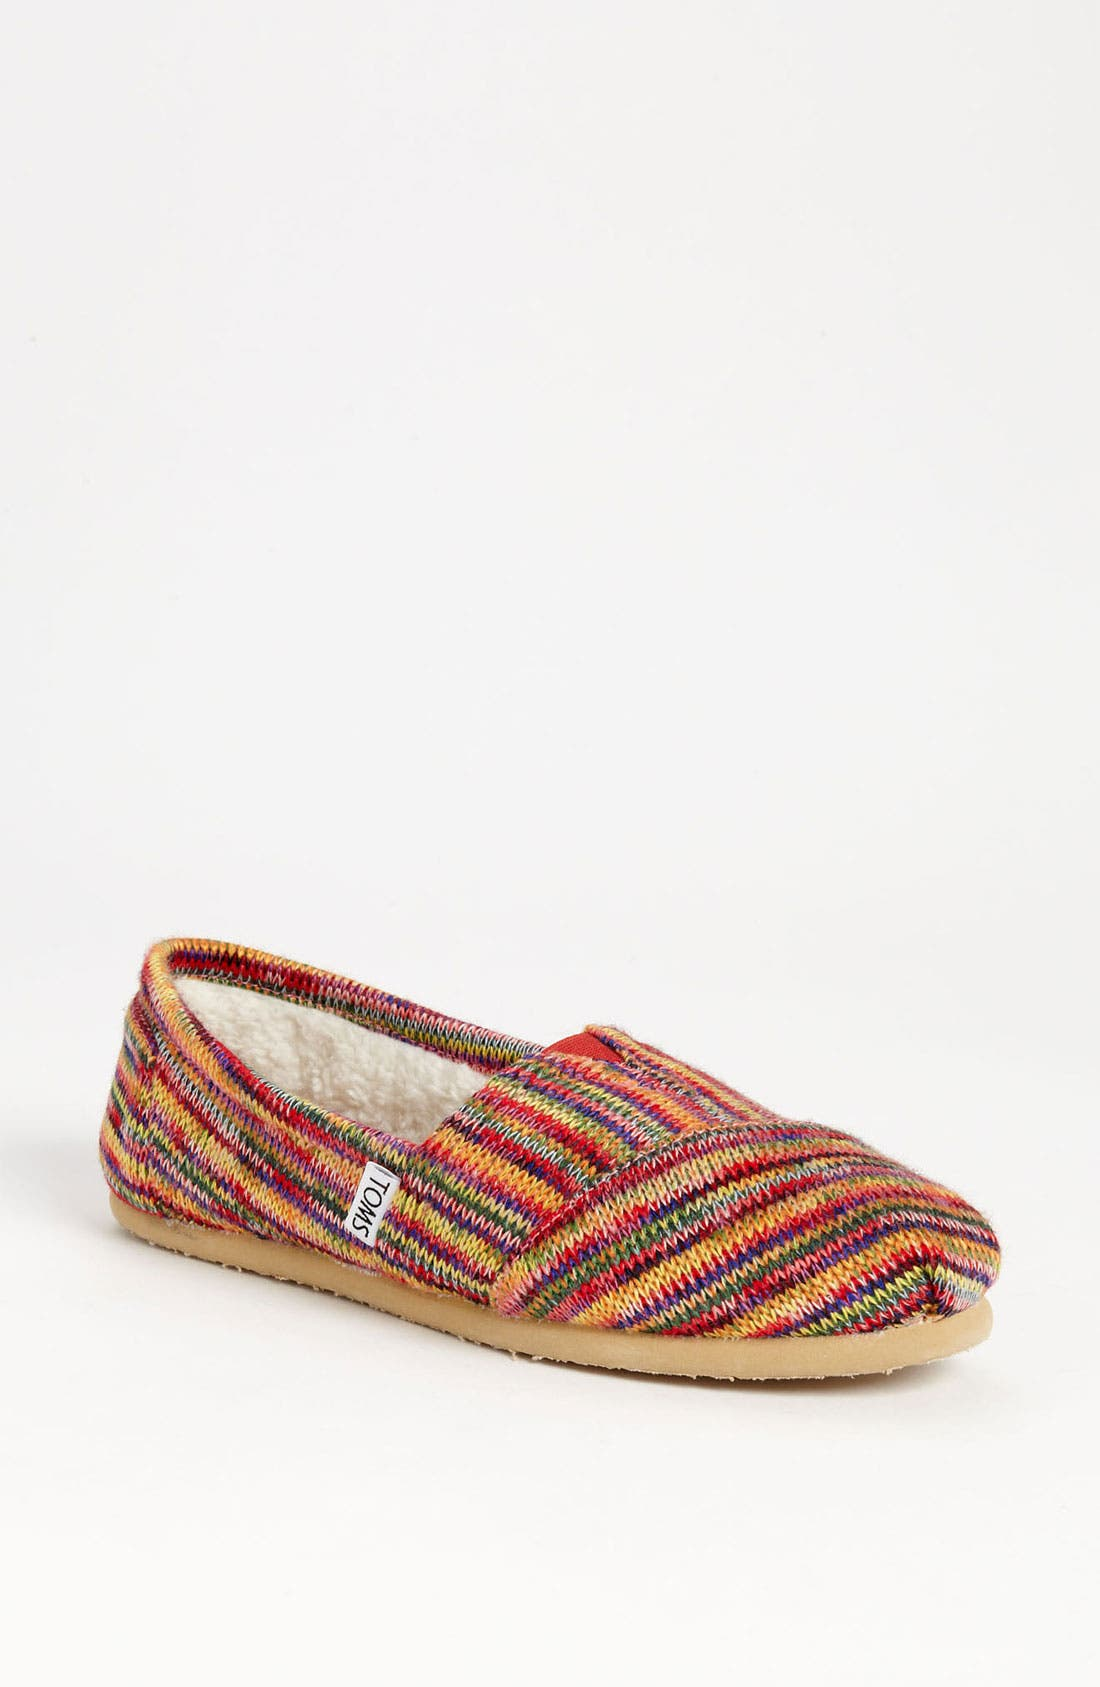 Alternate Image 1 Selected - TOMS 'Classic' Knit Slip-On (Women)